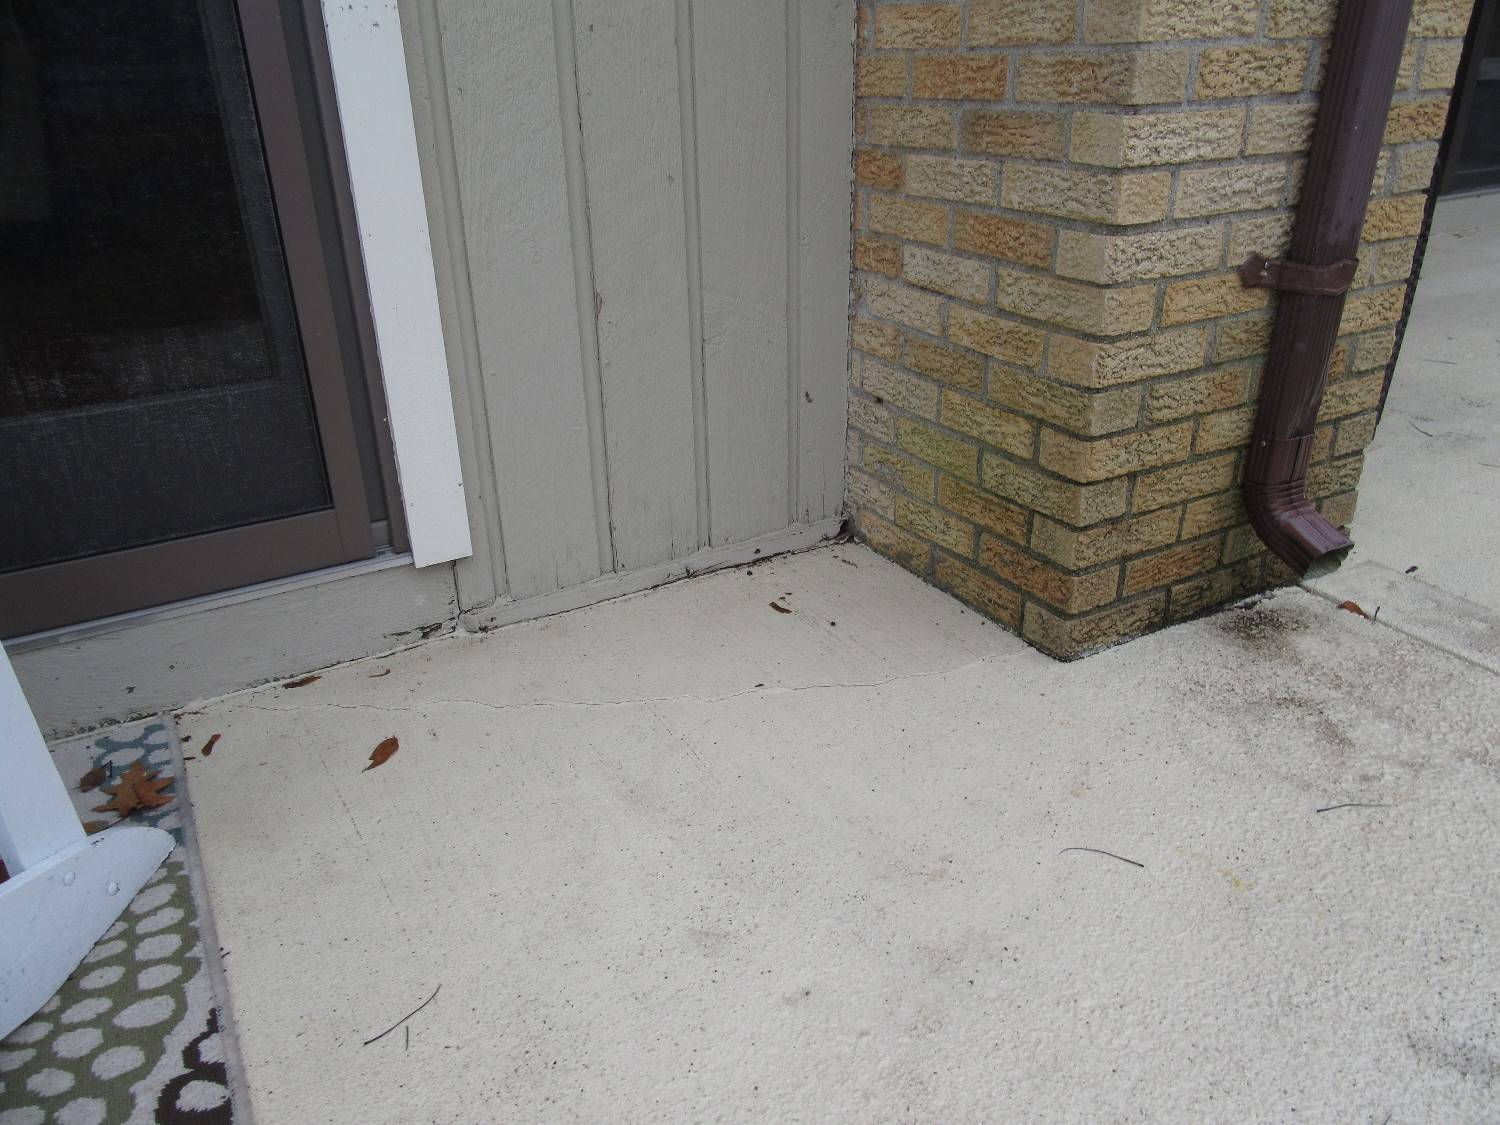 Downspout onto patio